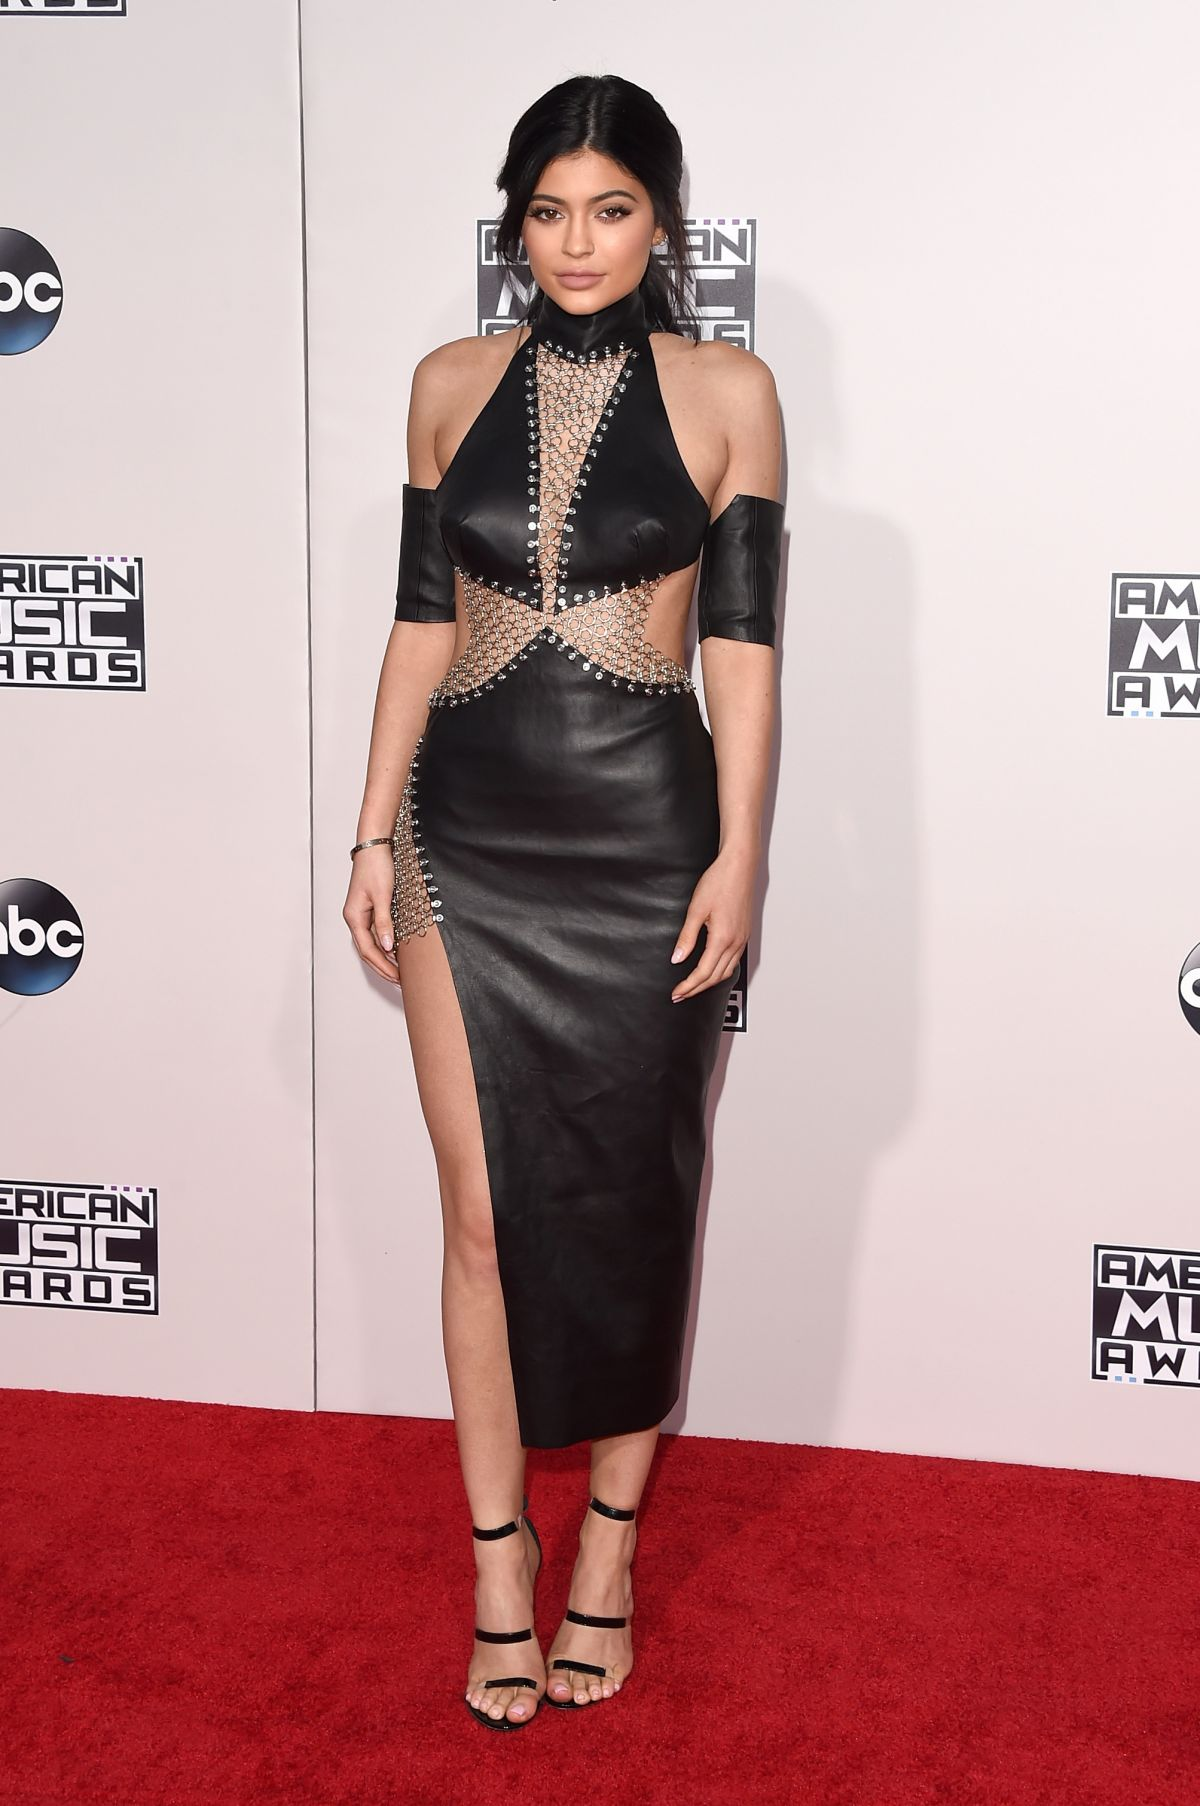 KYLIE JENNER at 2015 American Music Awards in Los Angeles 11/22/2015